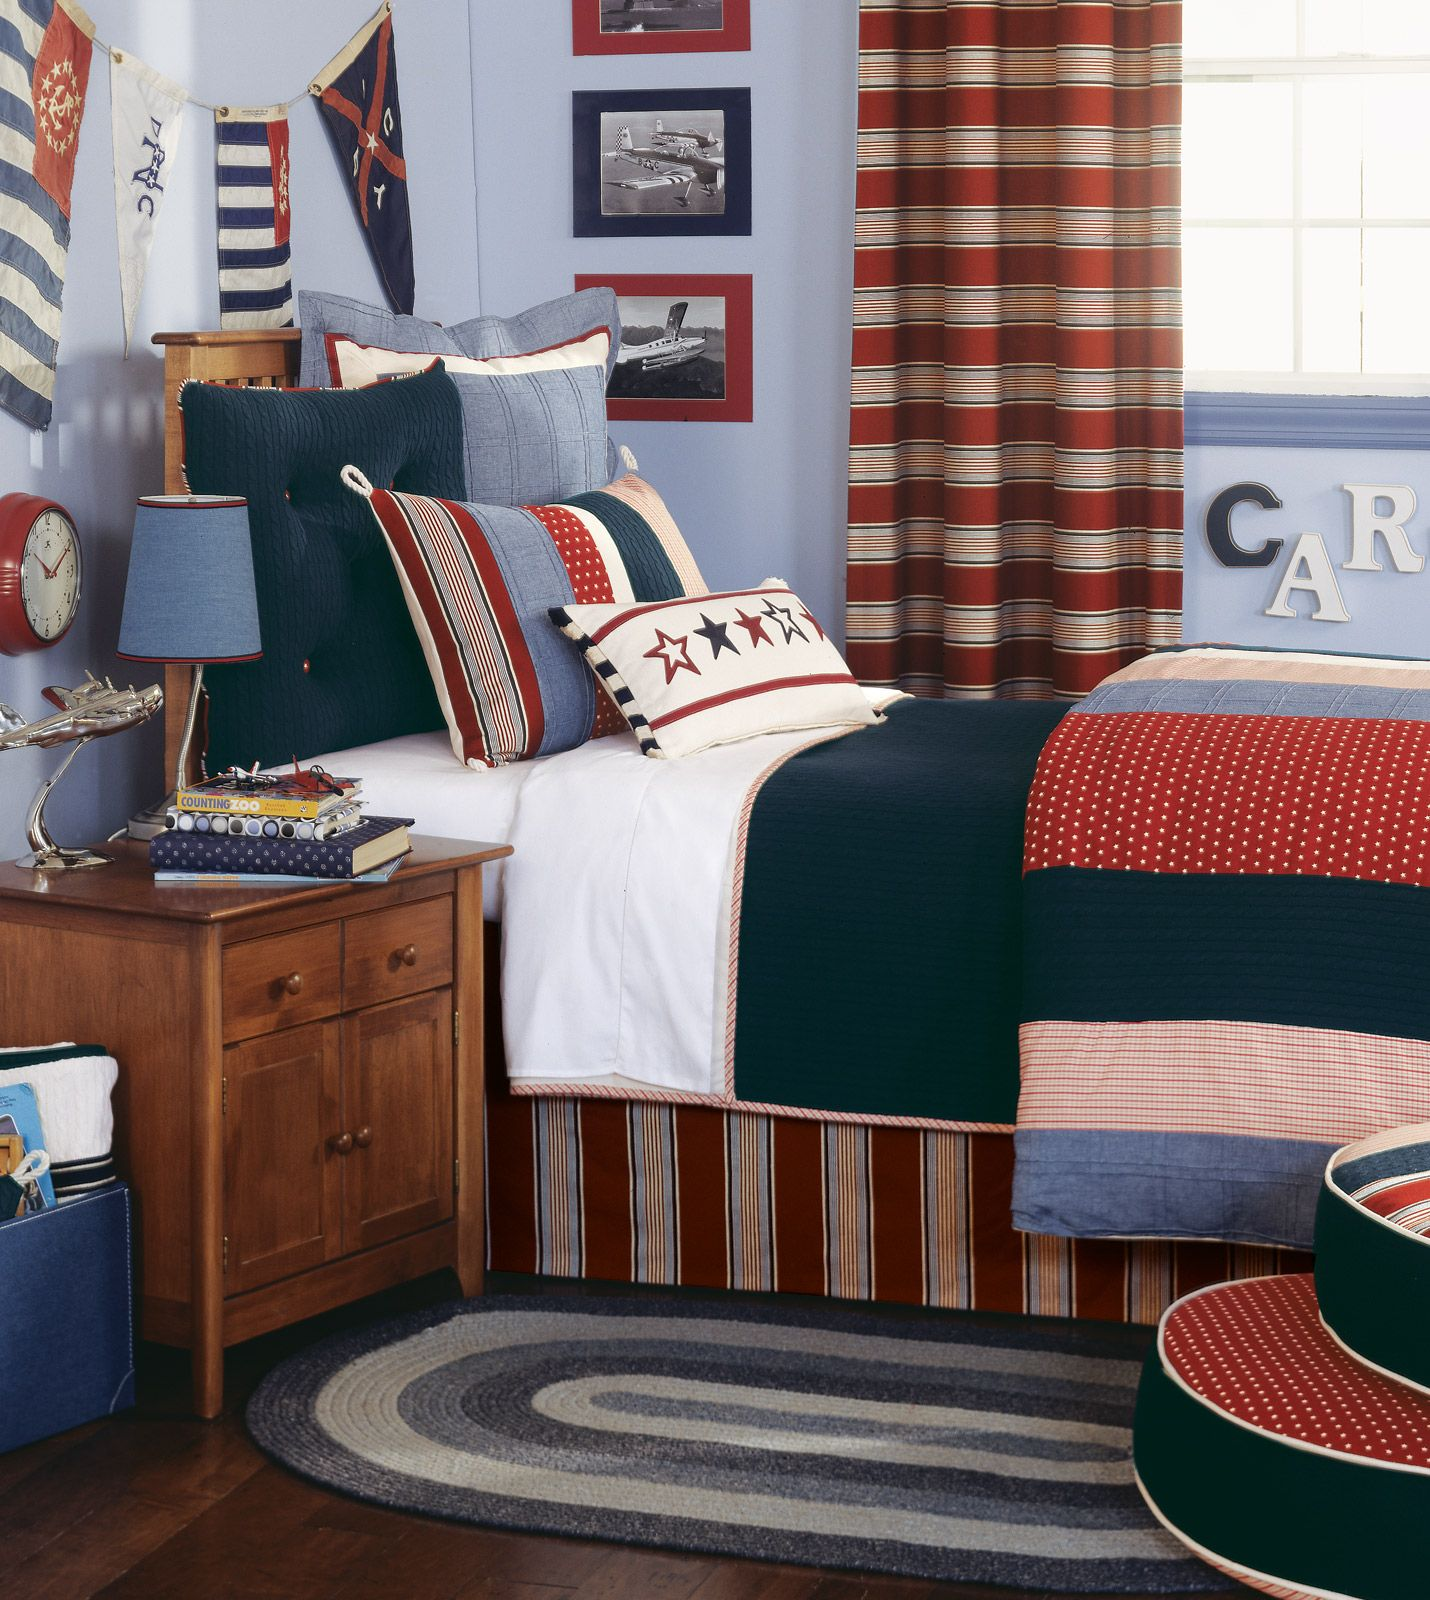 A Great Bed Set For Boys Or Girls Stylish Bedroom Design